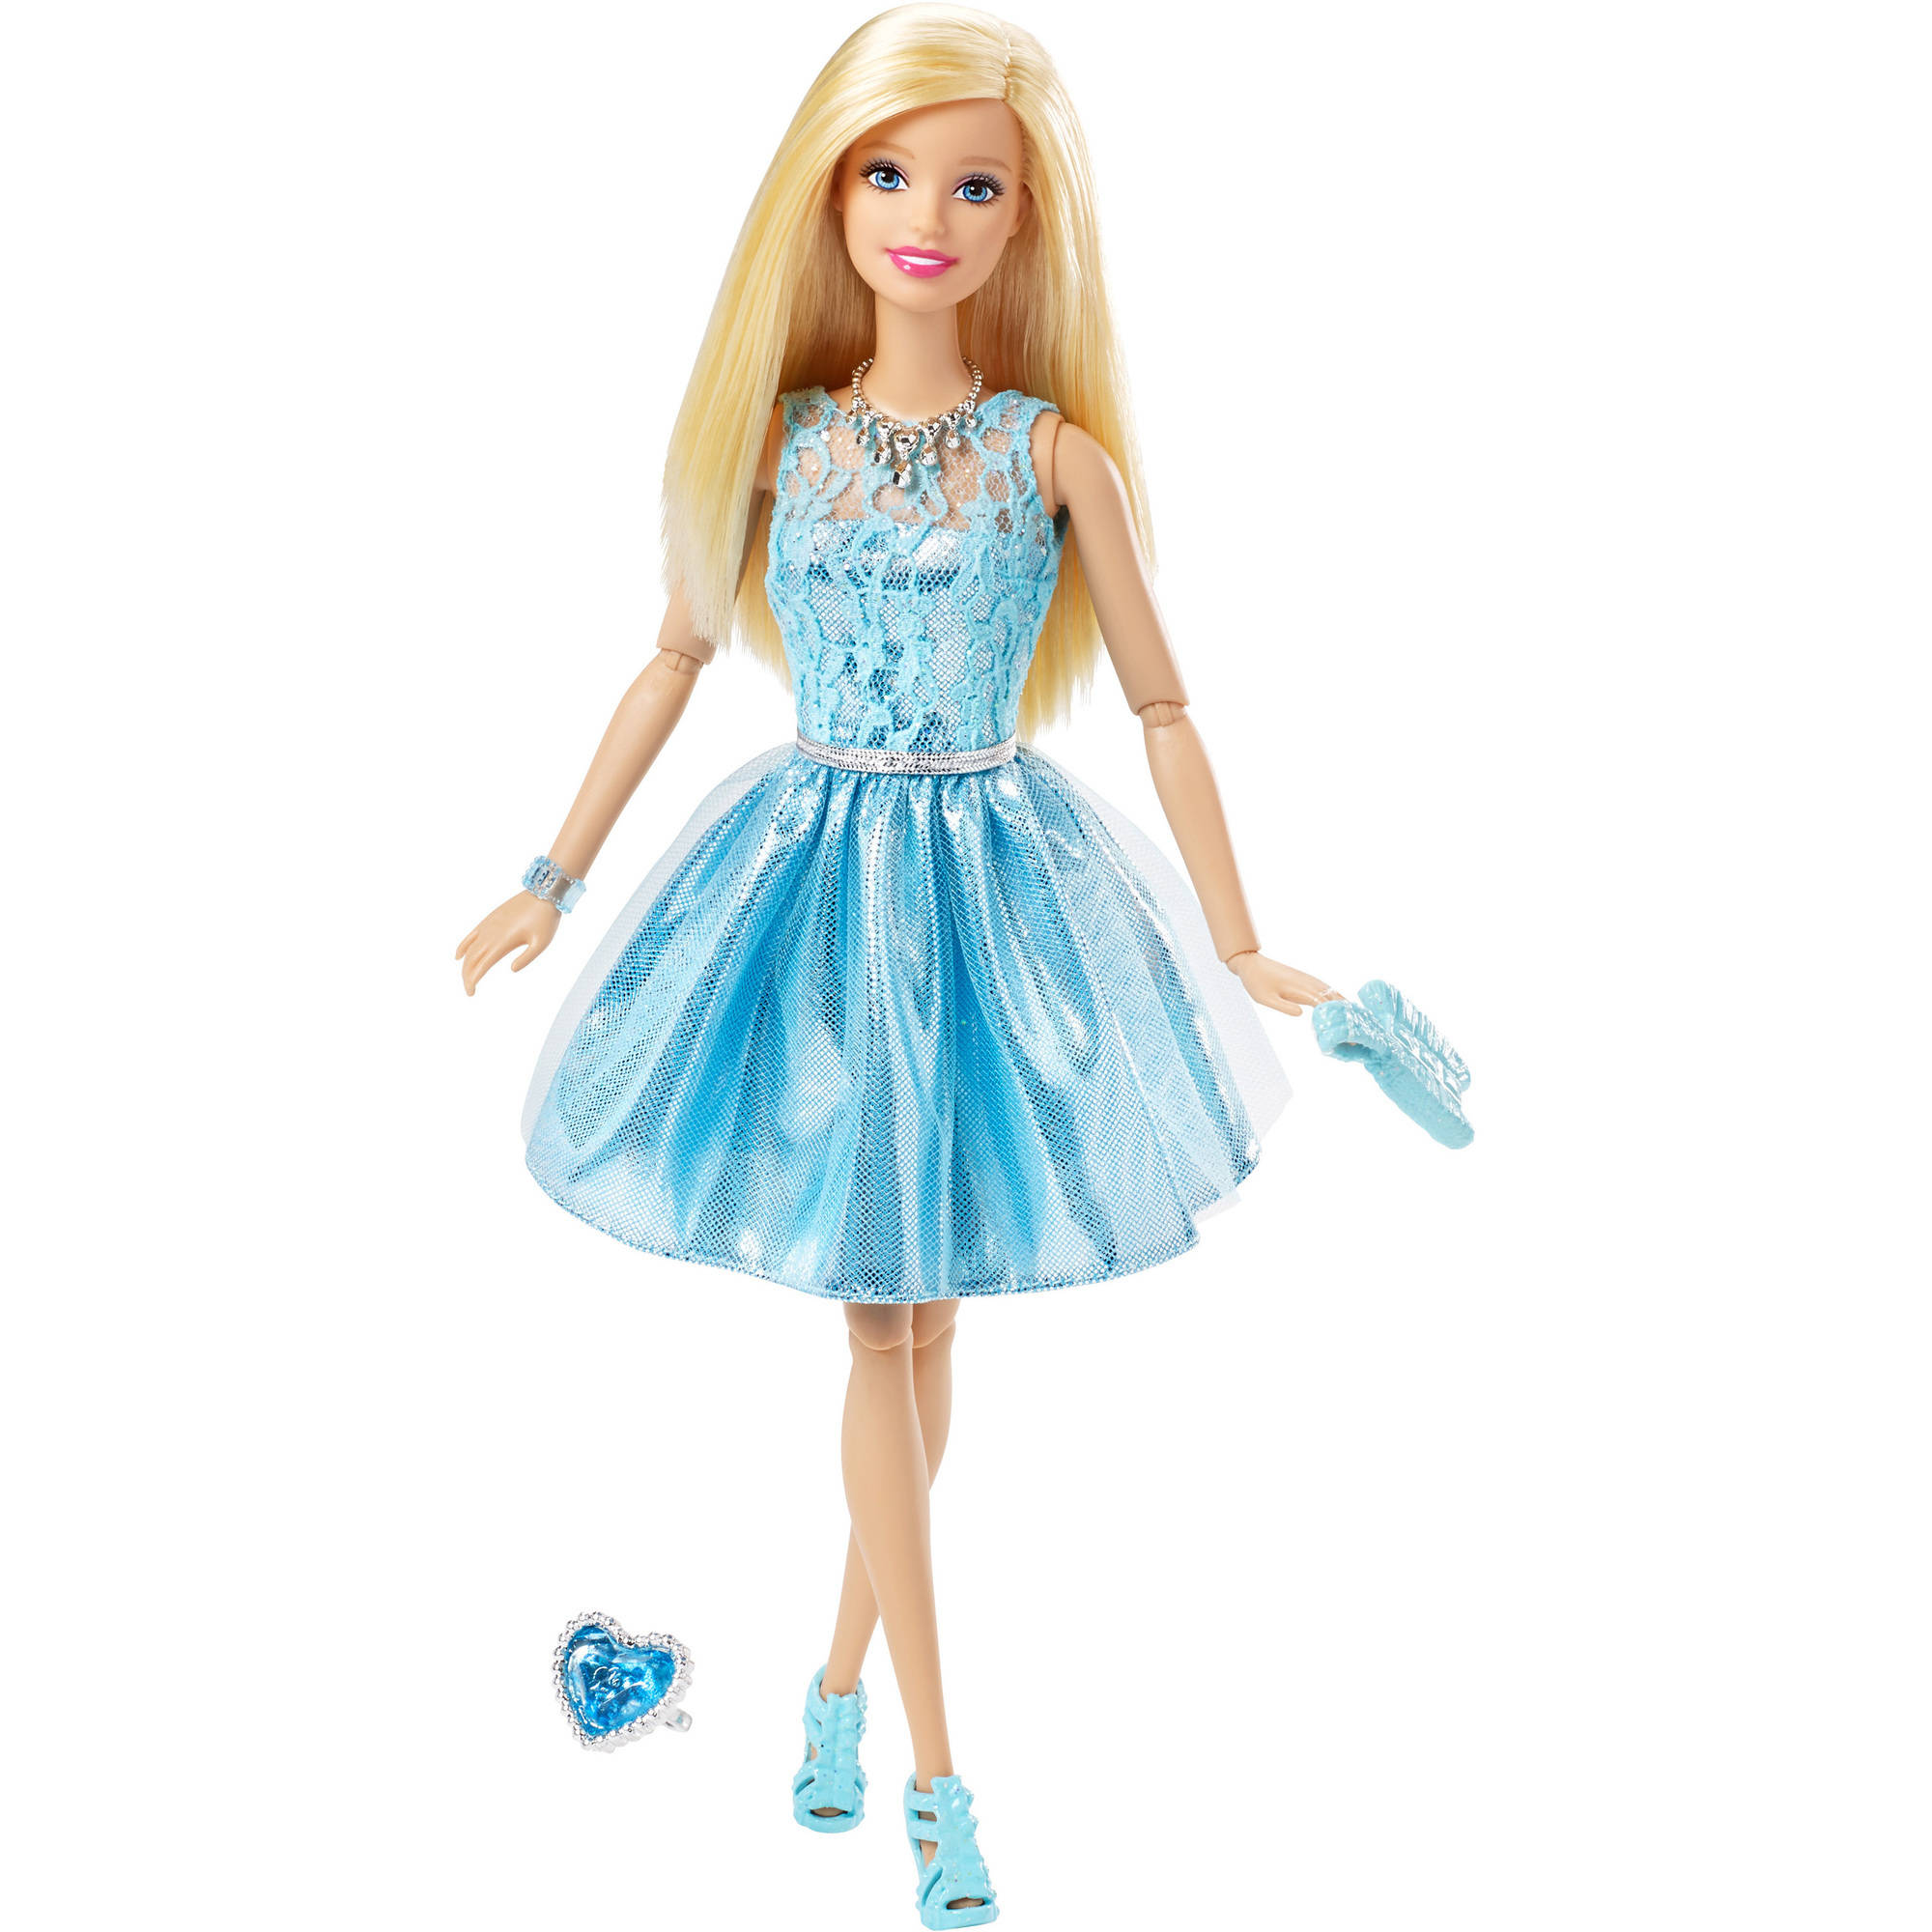 Barbie Birthstone Collectible Doll, March